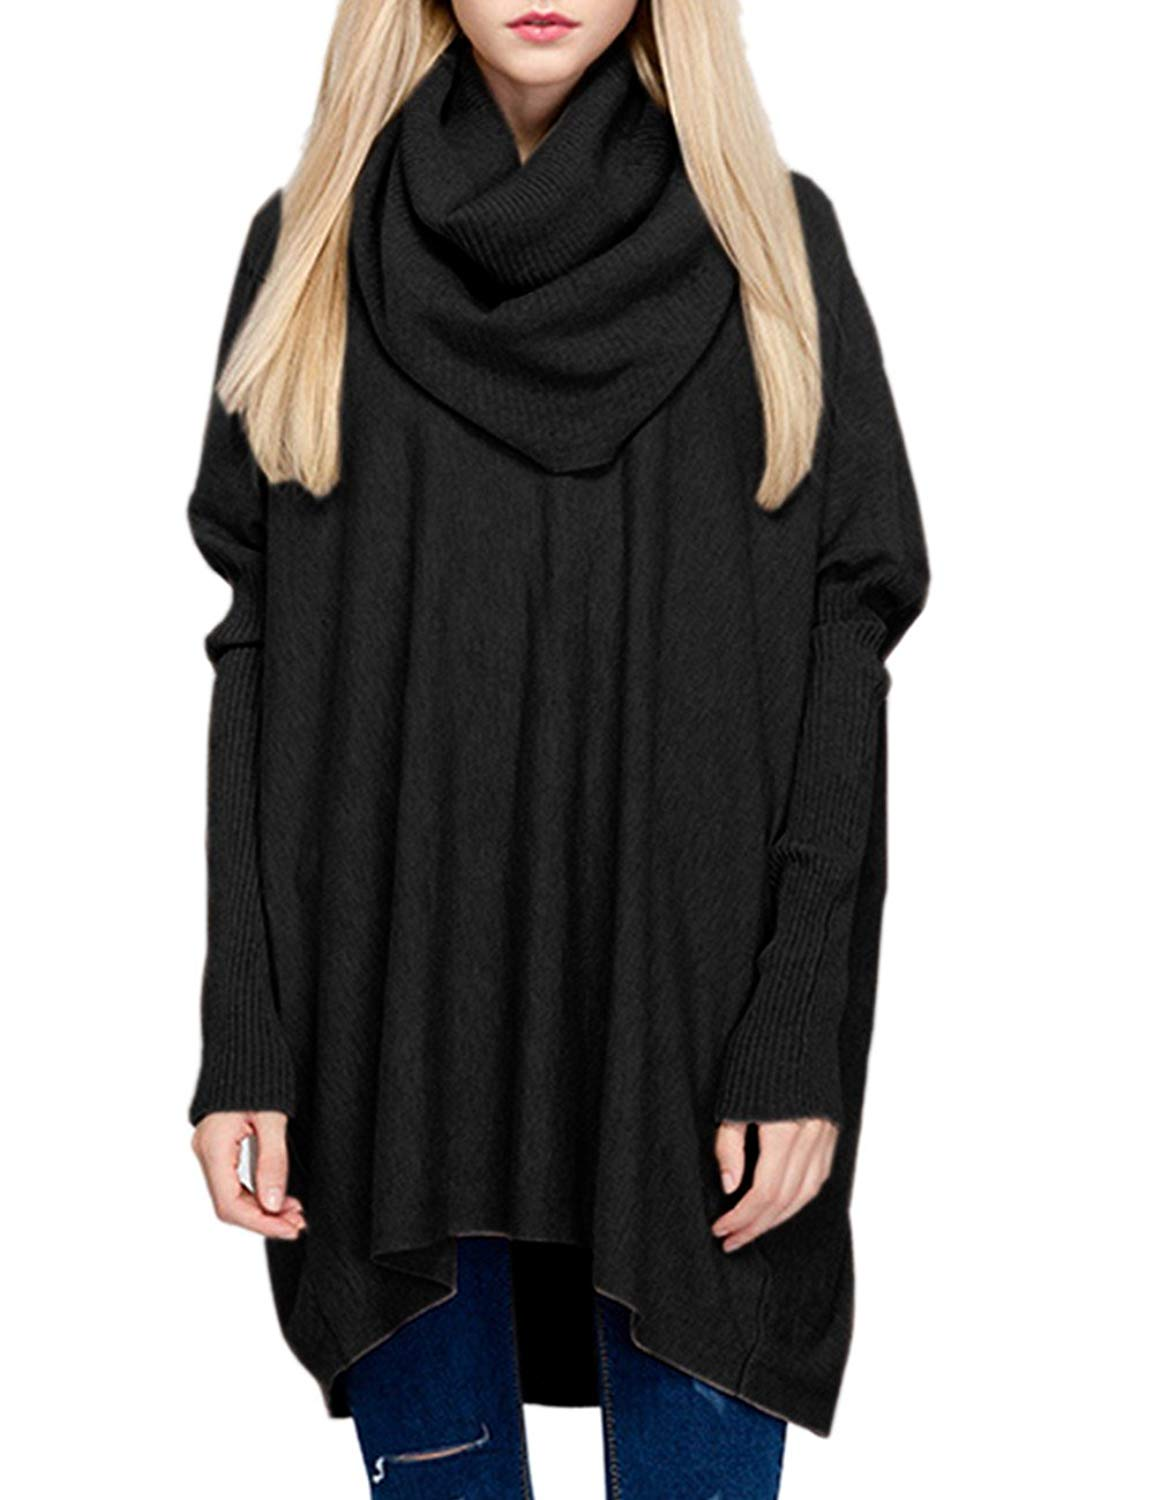 Sexyshine Women's Cowl Neck Loose Oversized Knit Wool Pullover Sweaters